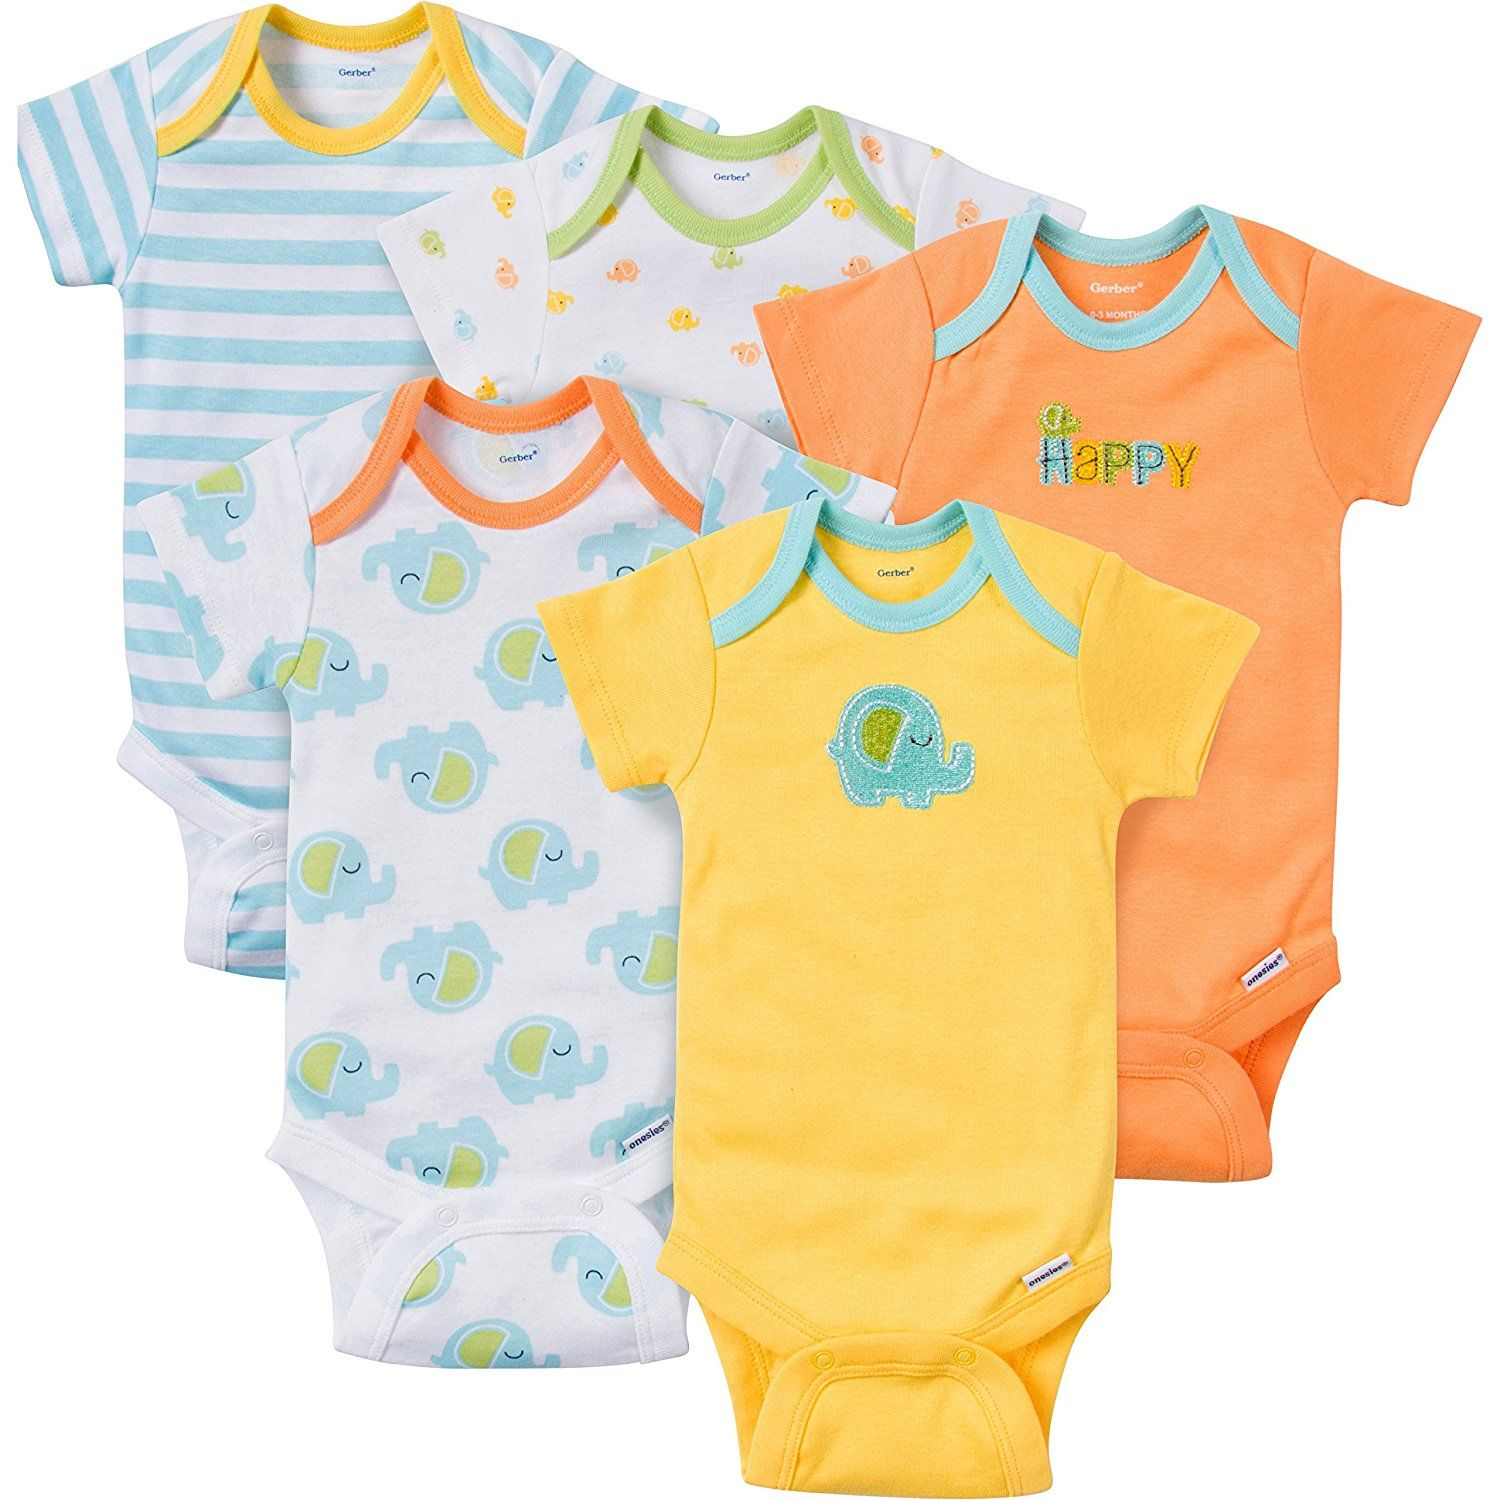 3-6 Months Dino Essentials Girls Baby 6-Pack Short-Sleeve Bodysuit